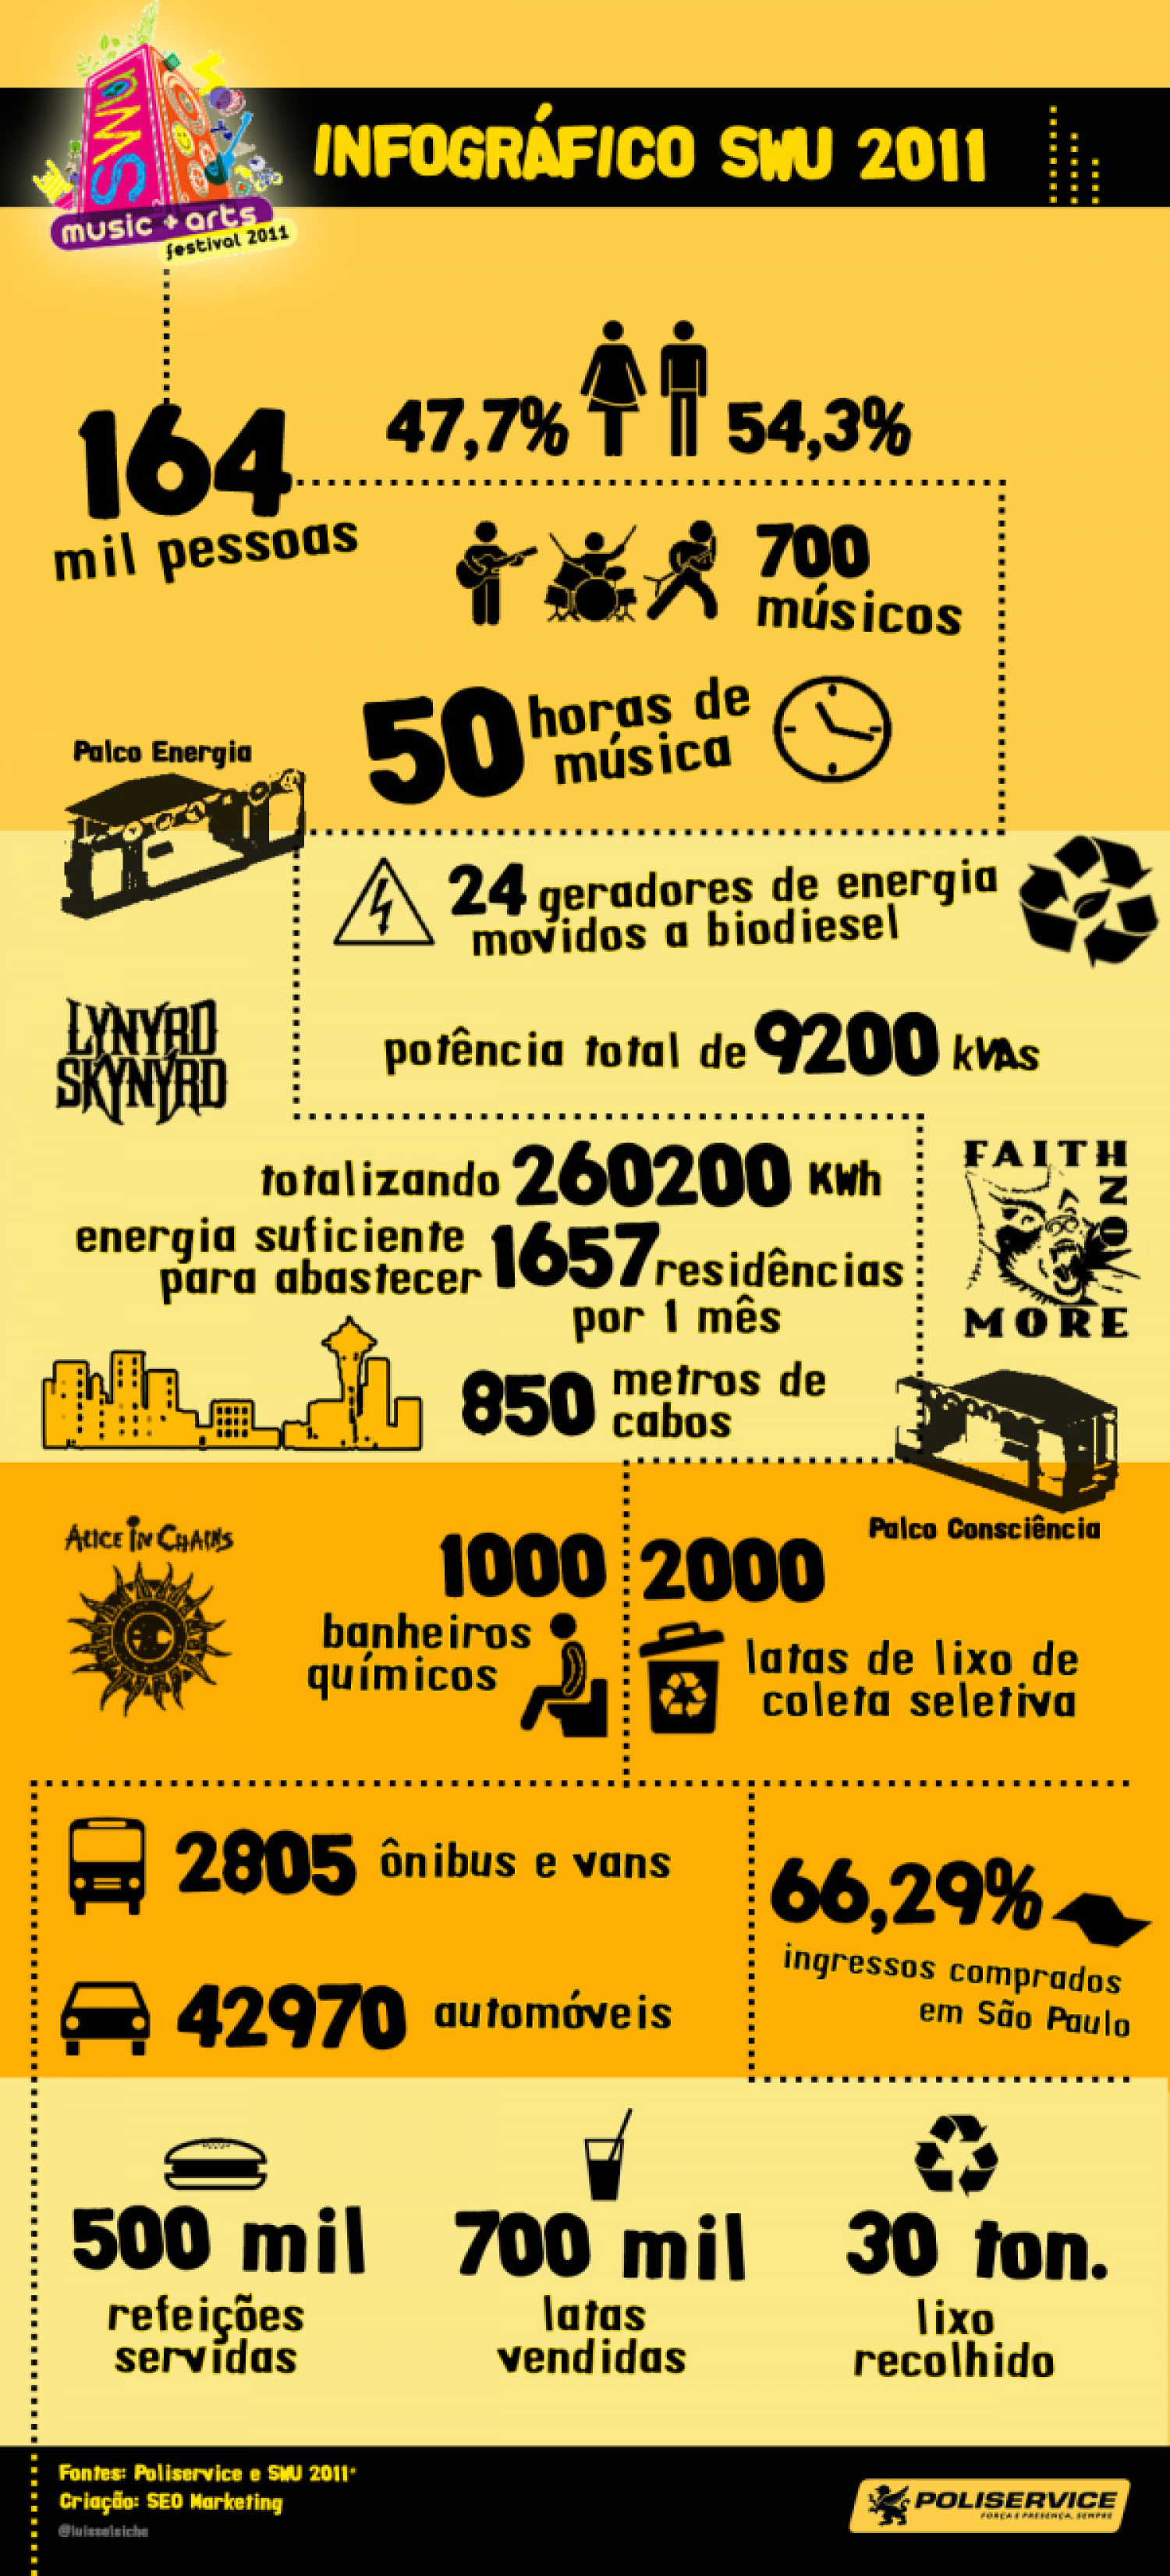 Festival SWU 2011 Infographic